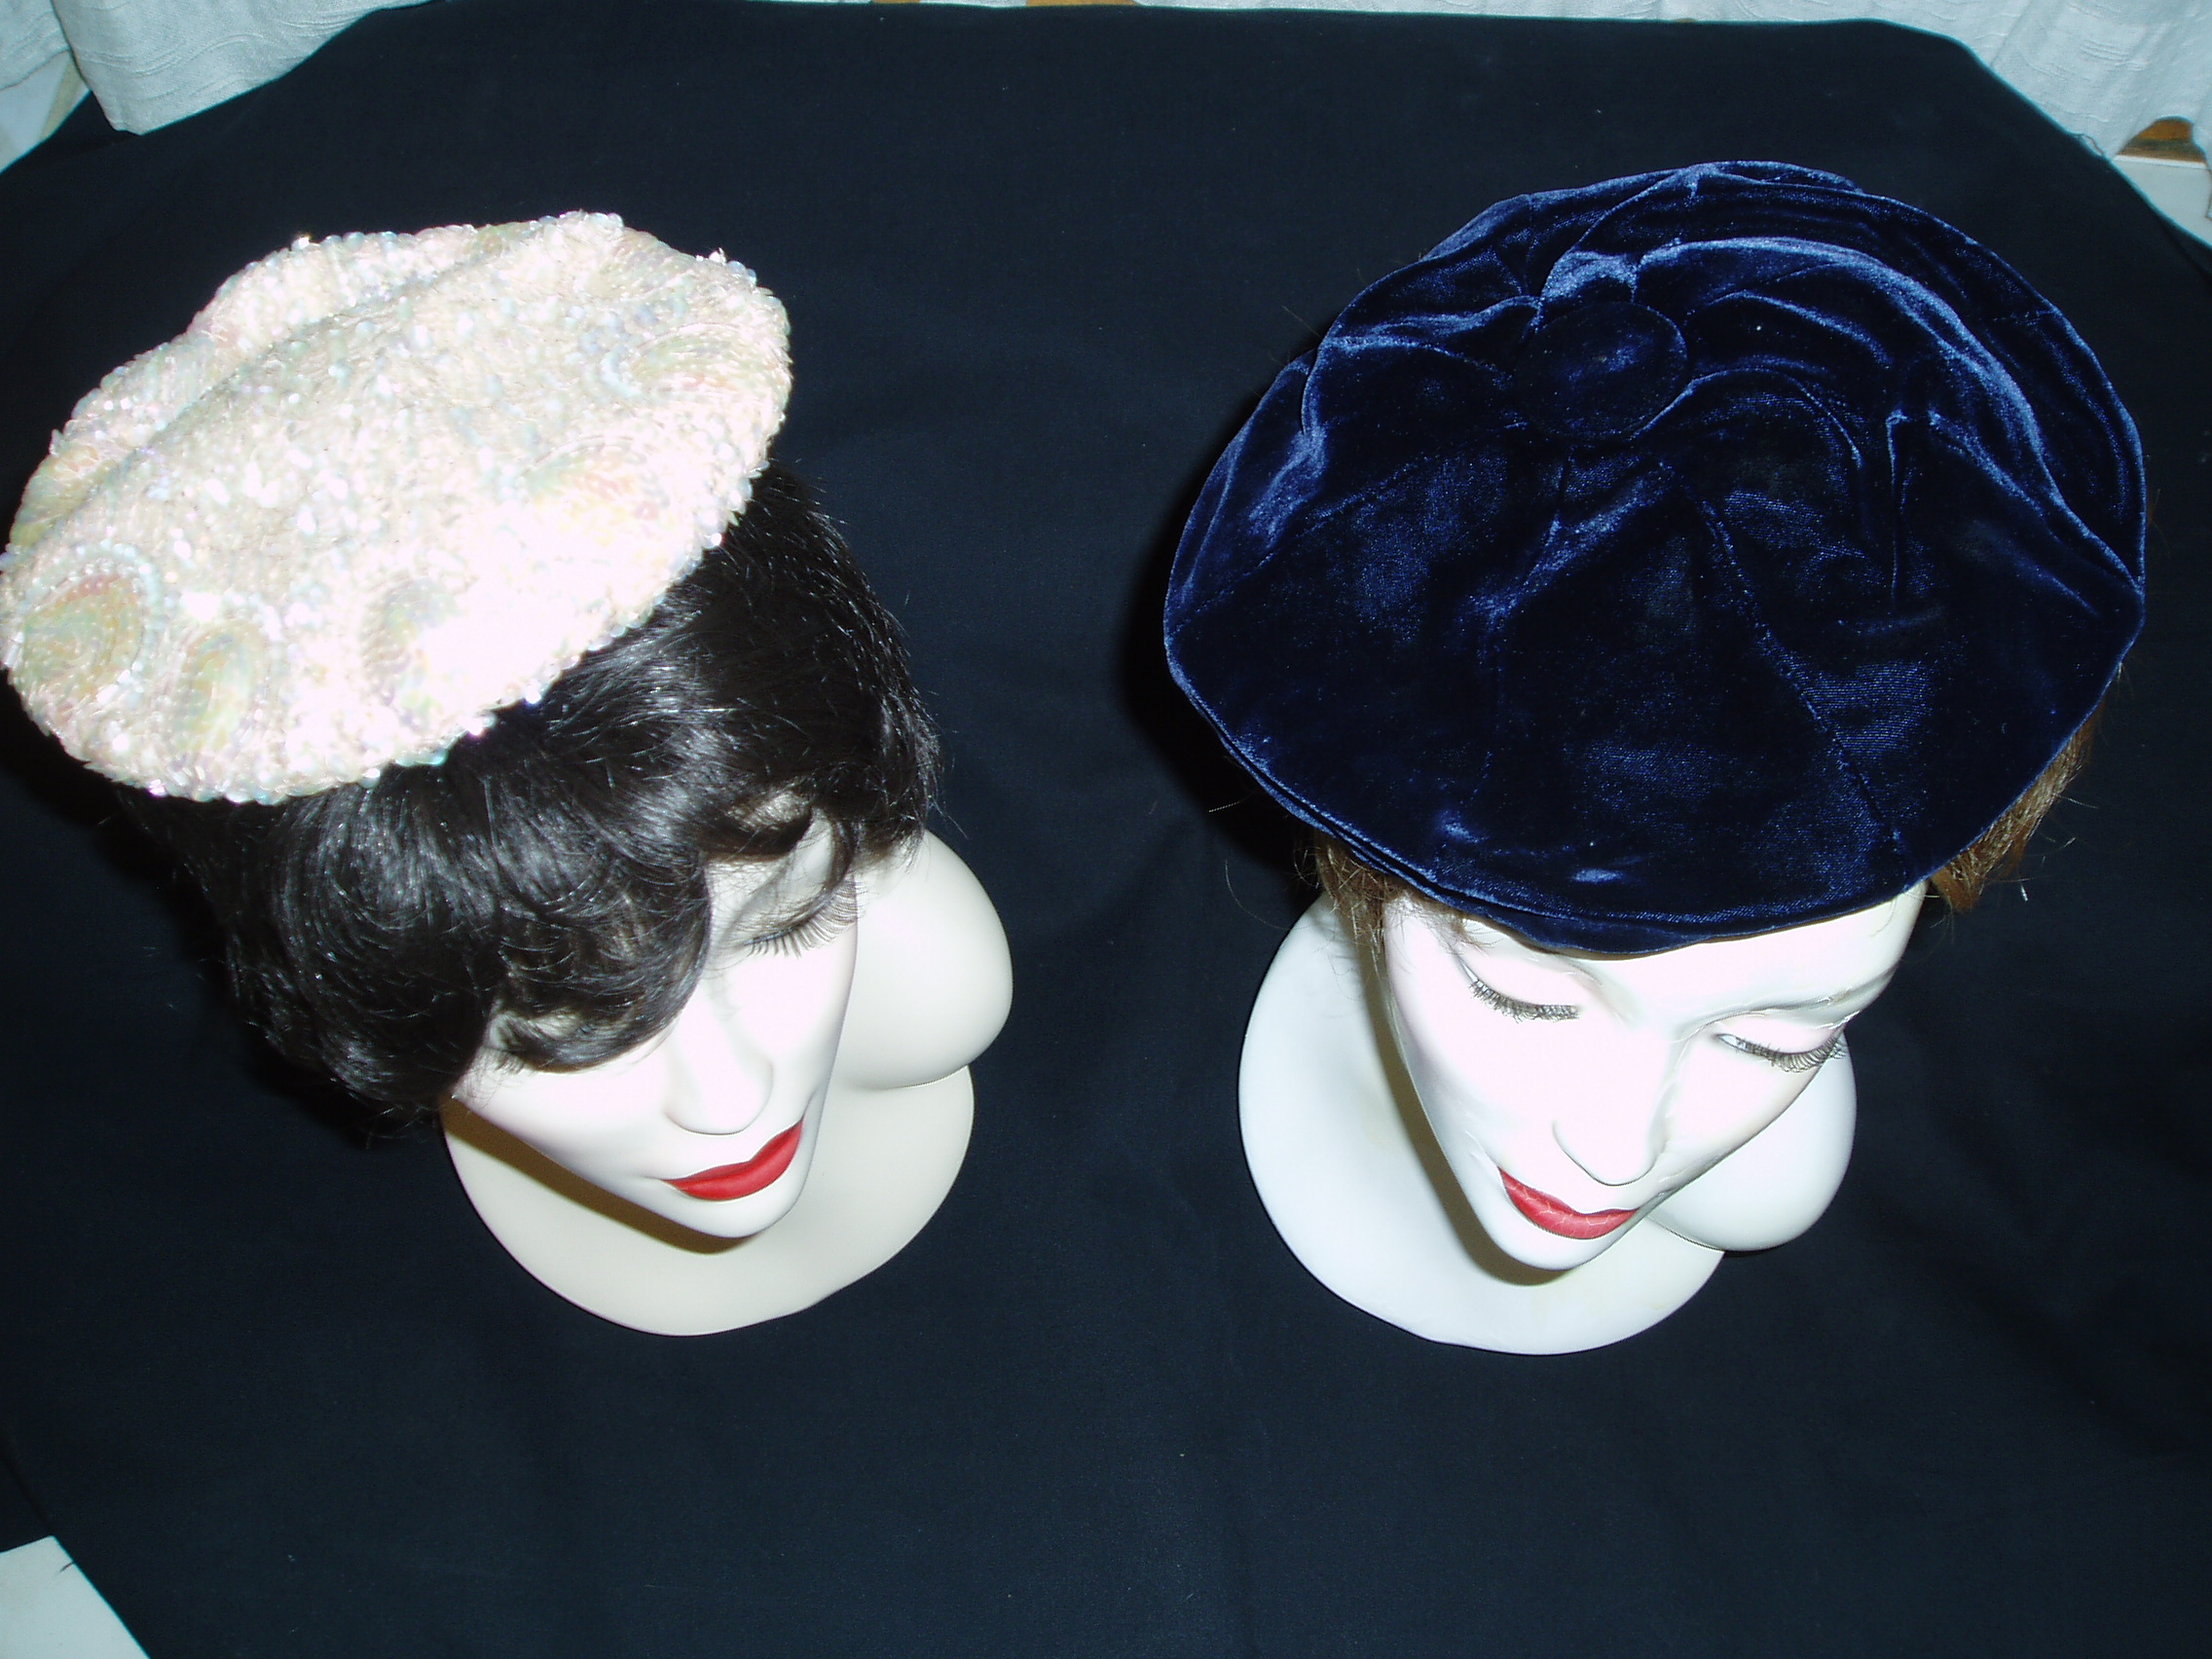 TRUE VINTAGE EVENING BERETS - VELVET AND BEADS, STARS AND MIDNIGHT SKY